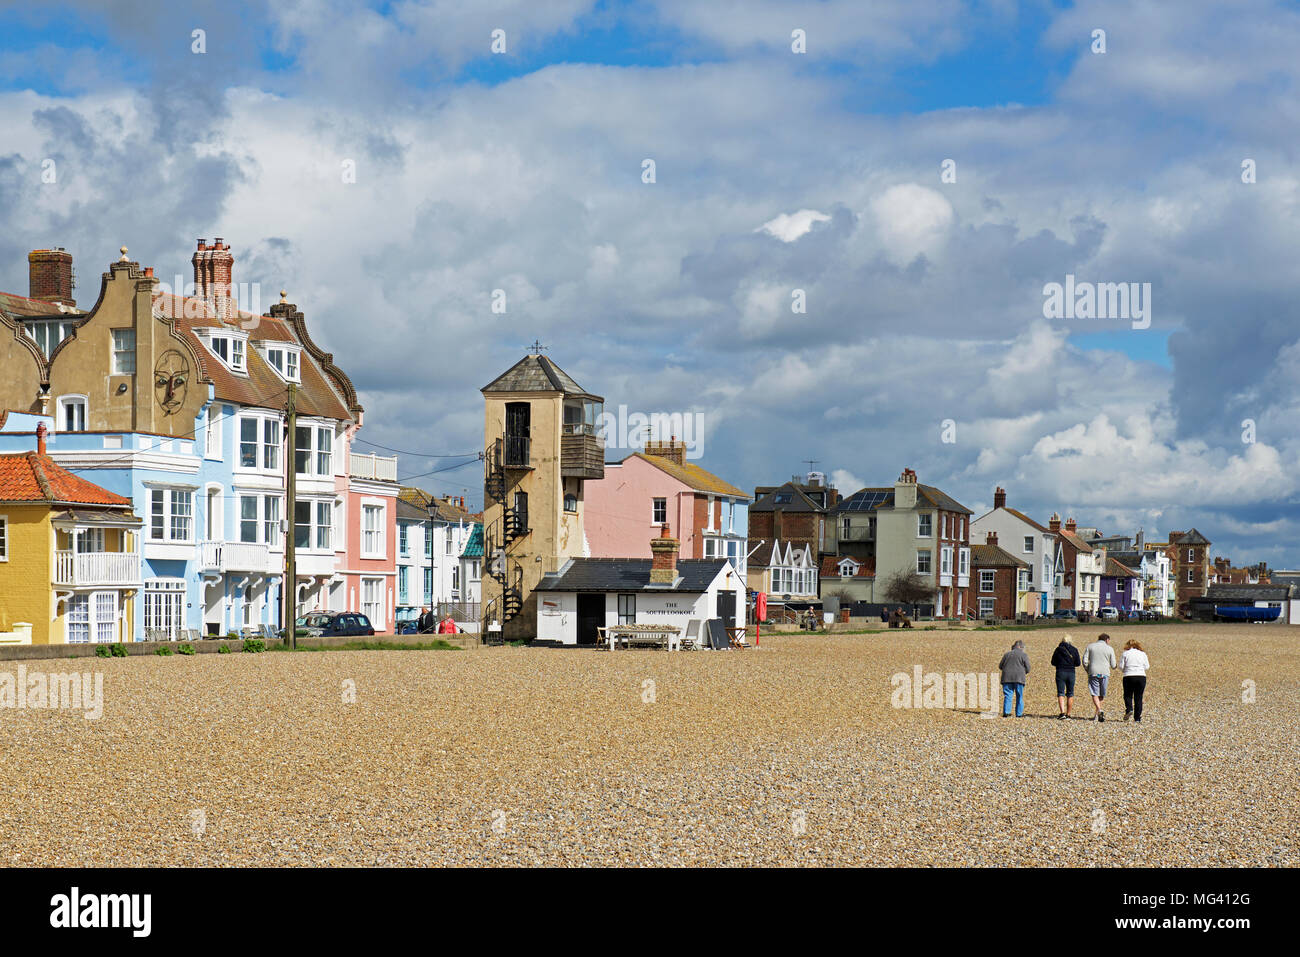 The sea front and beach, Aldeburgh, Suffolk, England UK - Stock Image